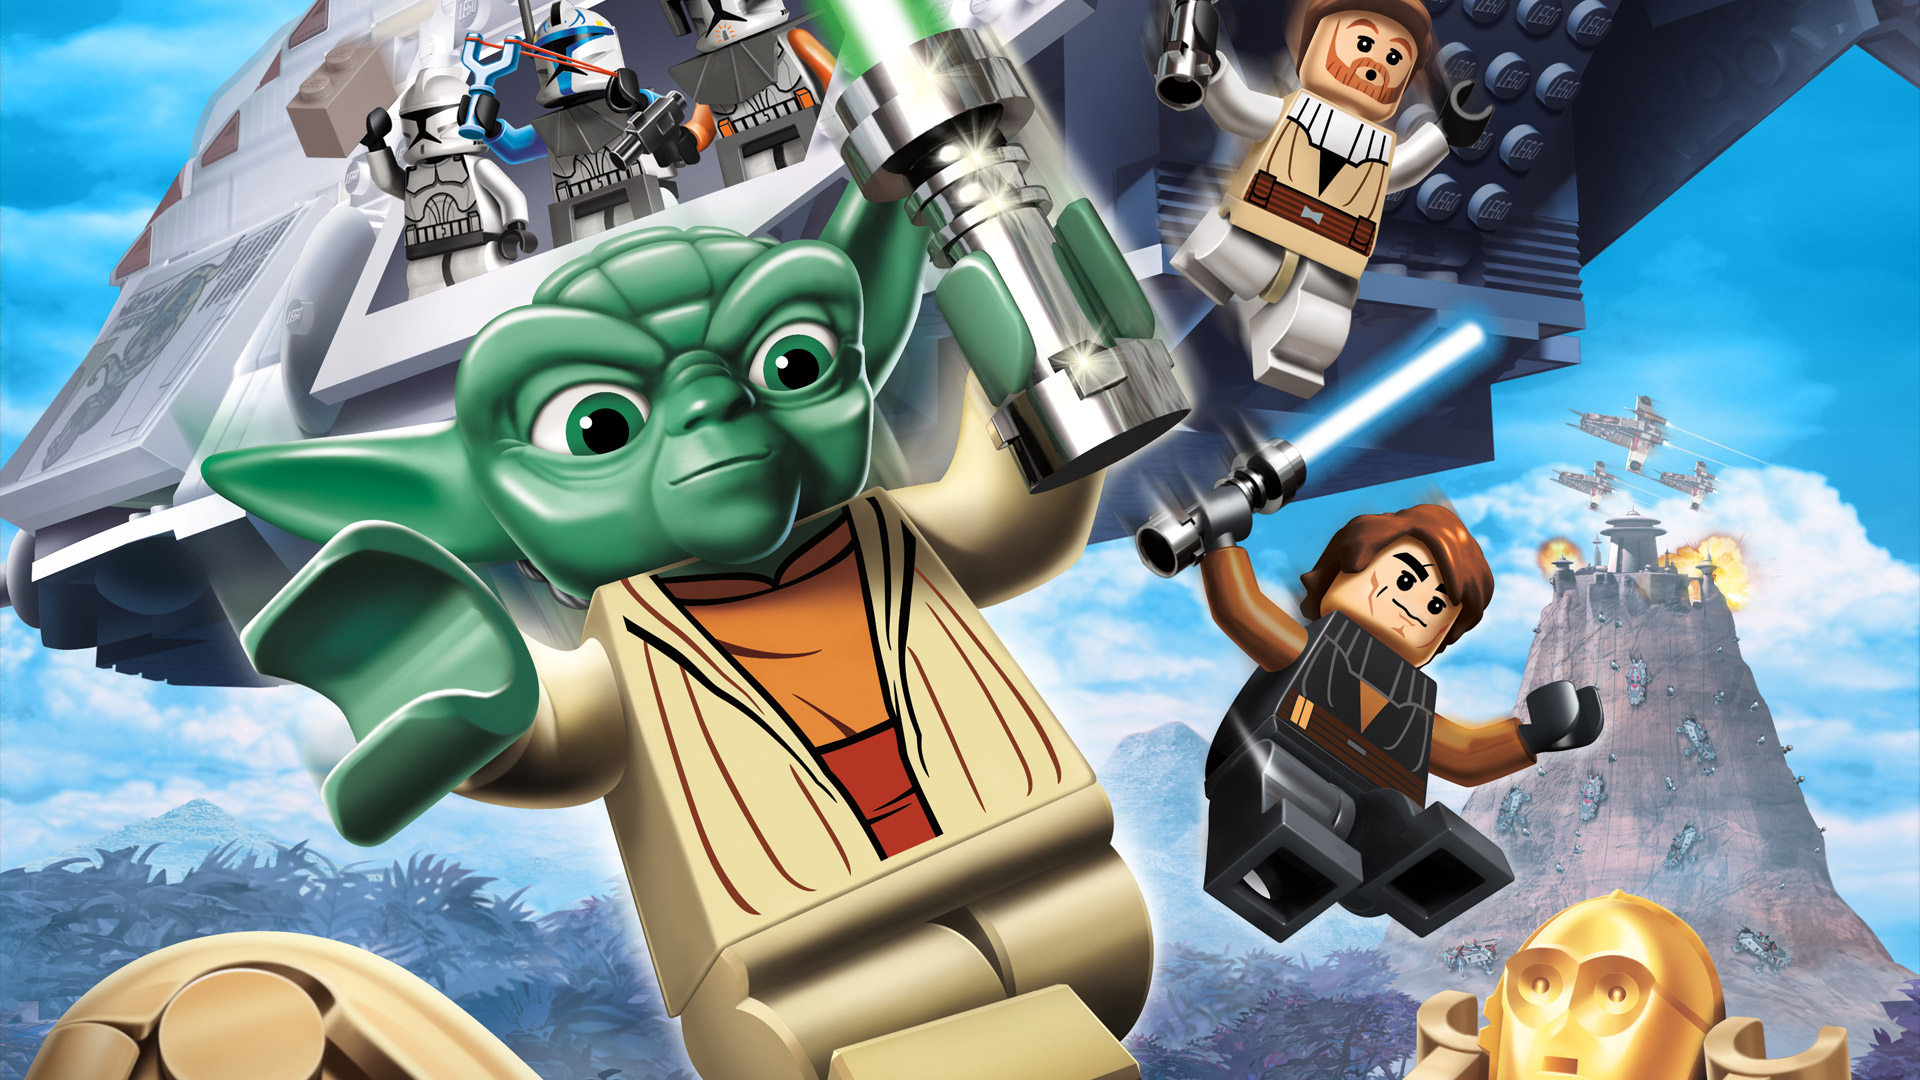 Lego Star Wars Iii The Clone Wars Wallpaper In 1920x1080